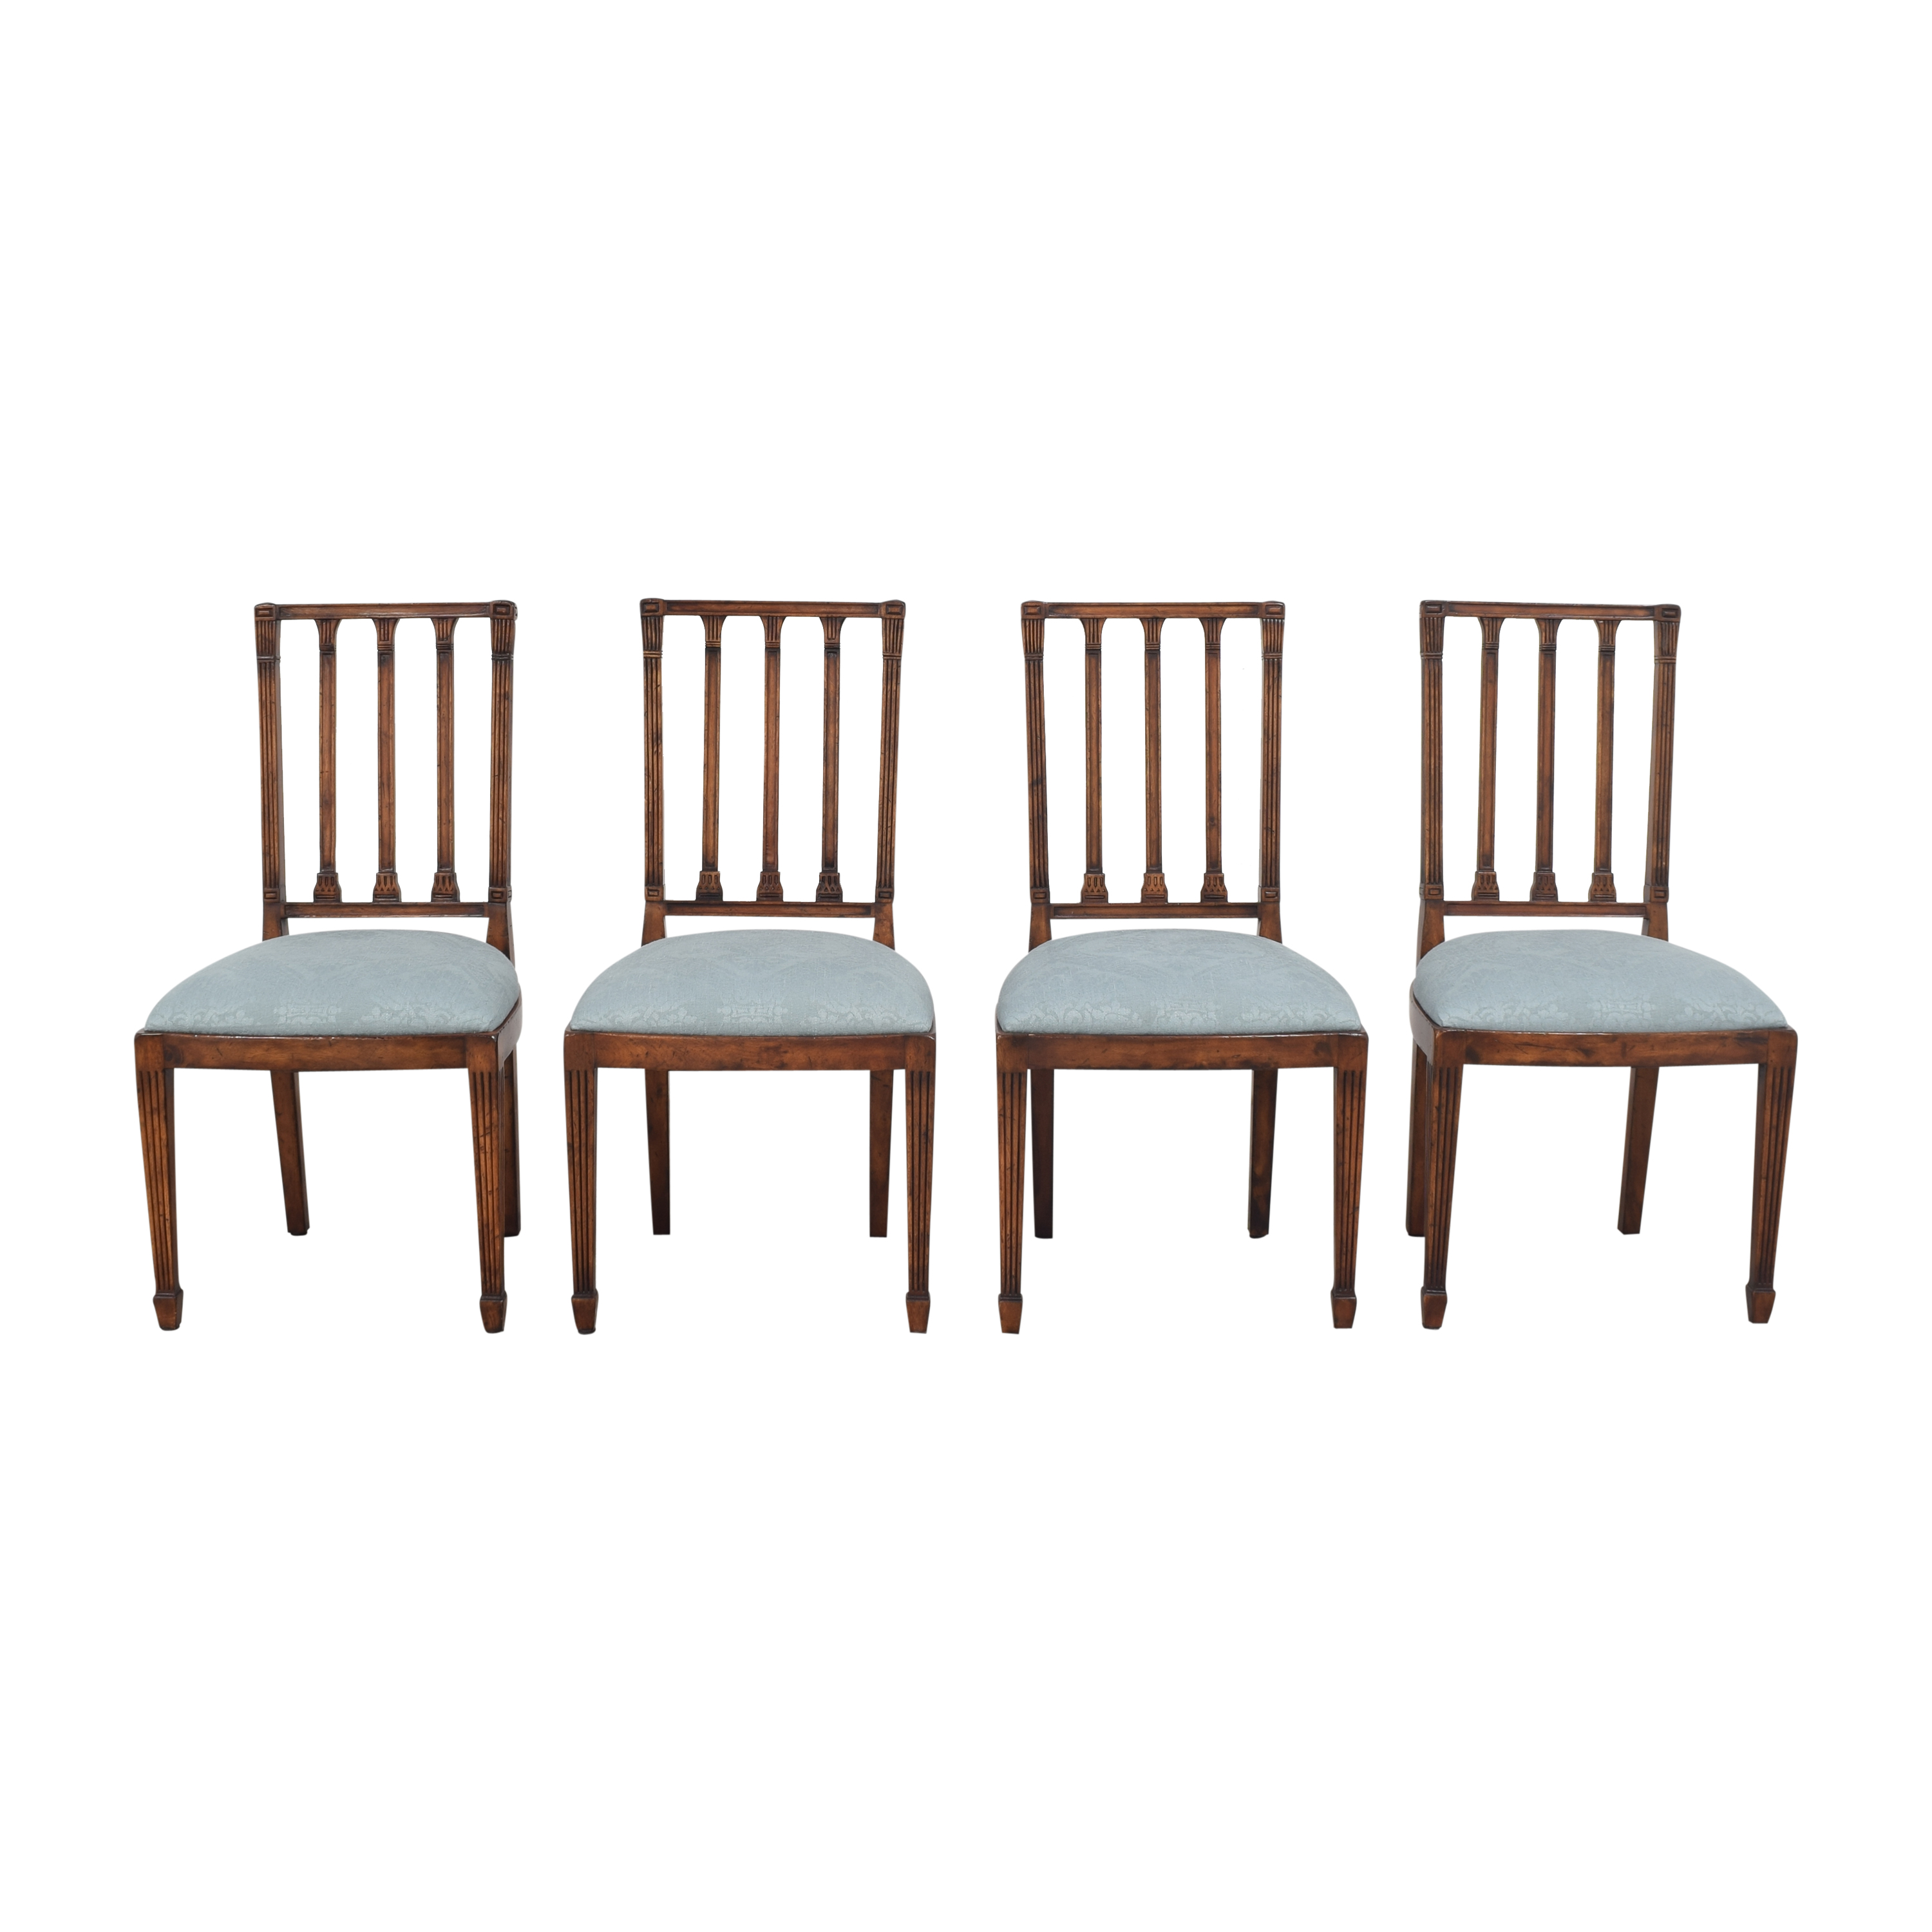 English Country Home English Country Home Upholstered Dining Side Chairs Chairs